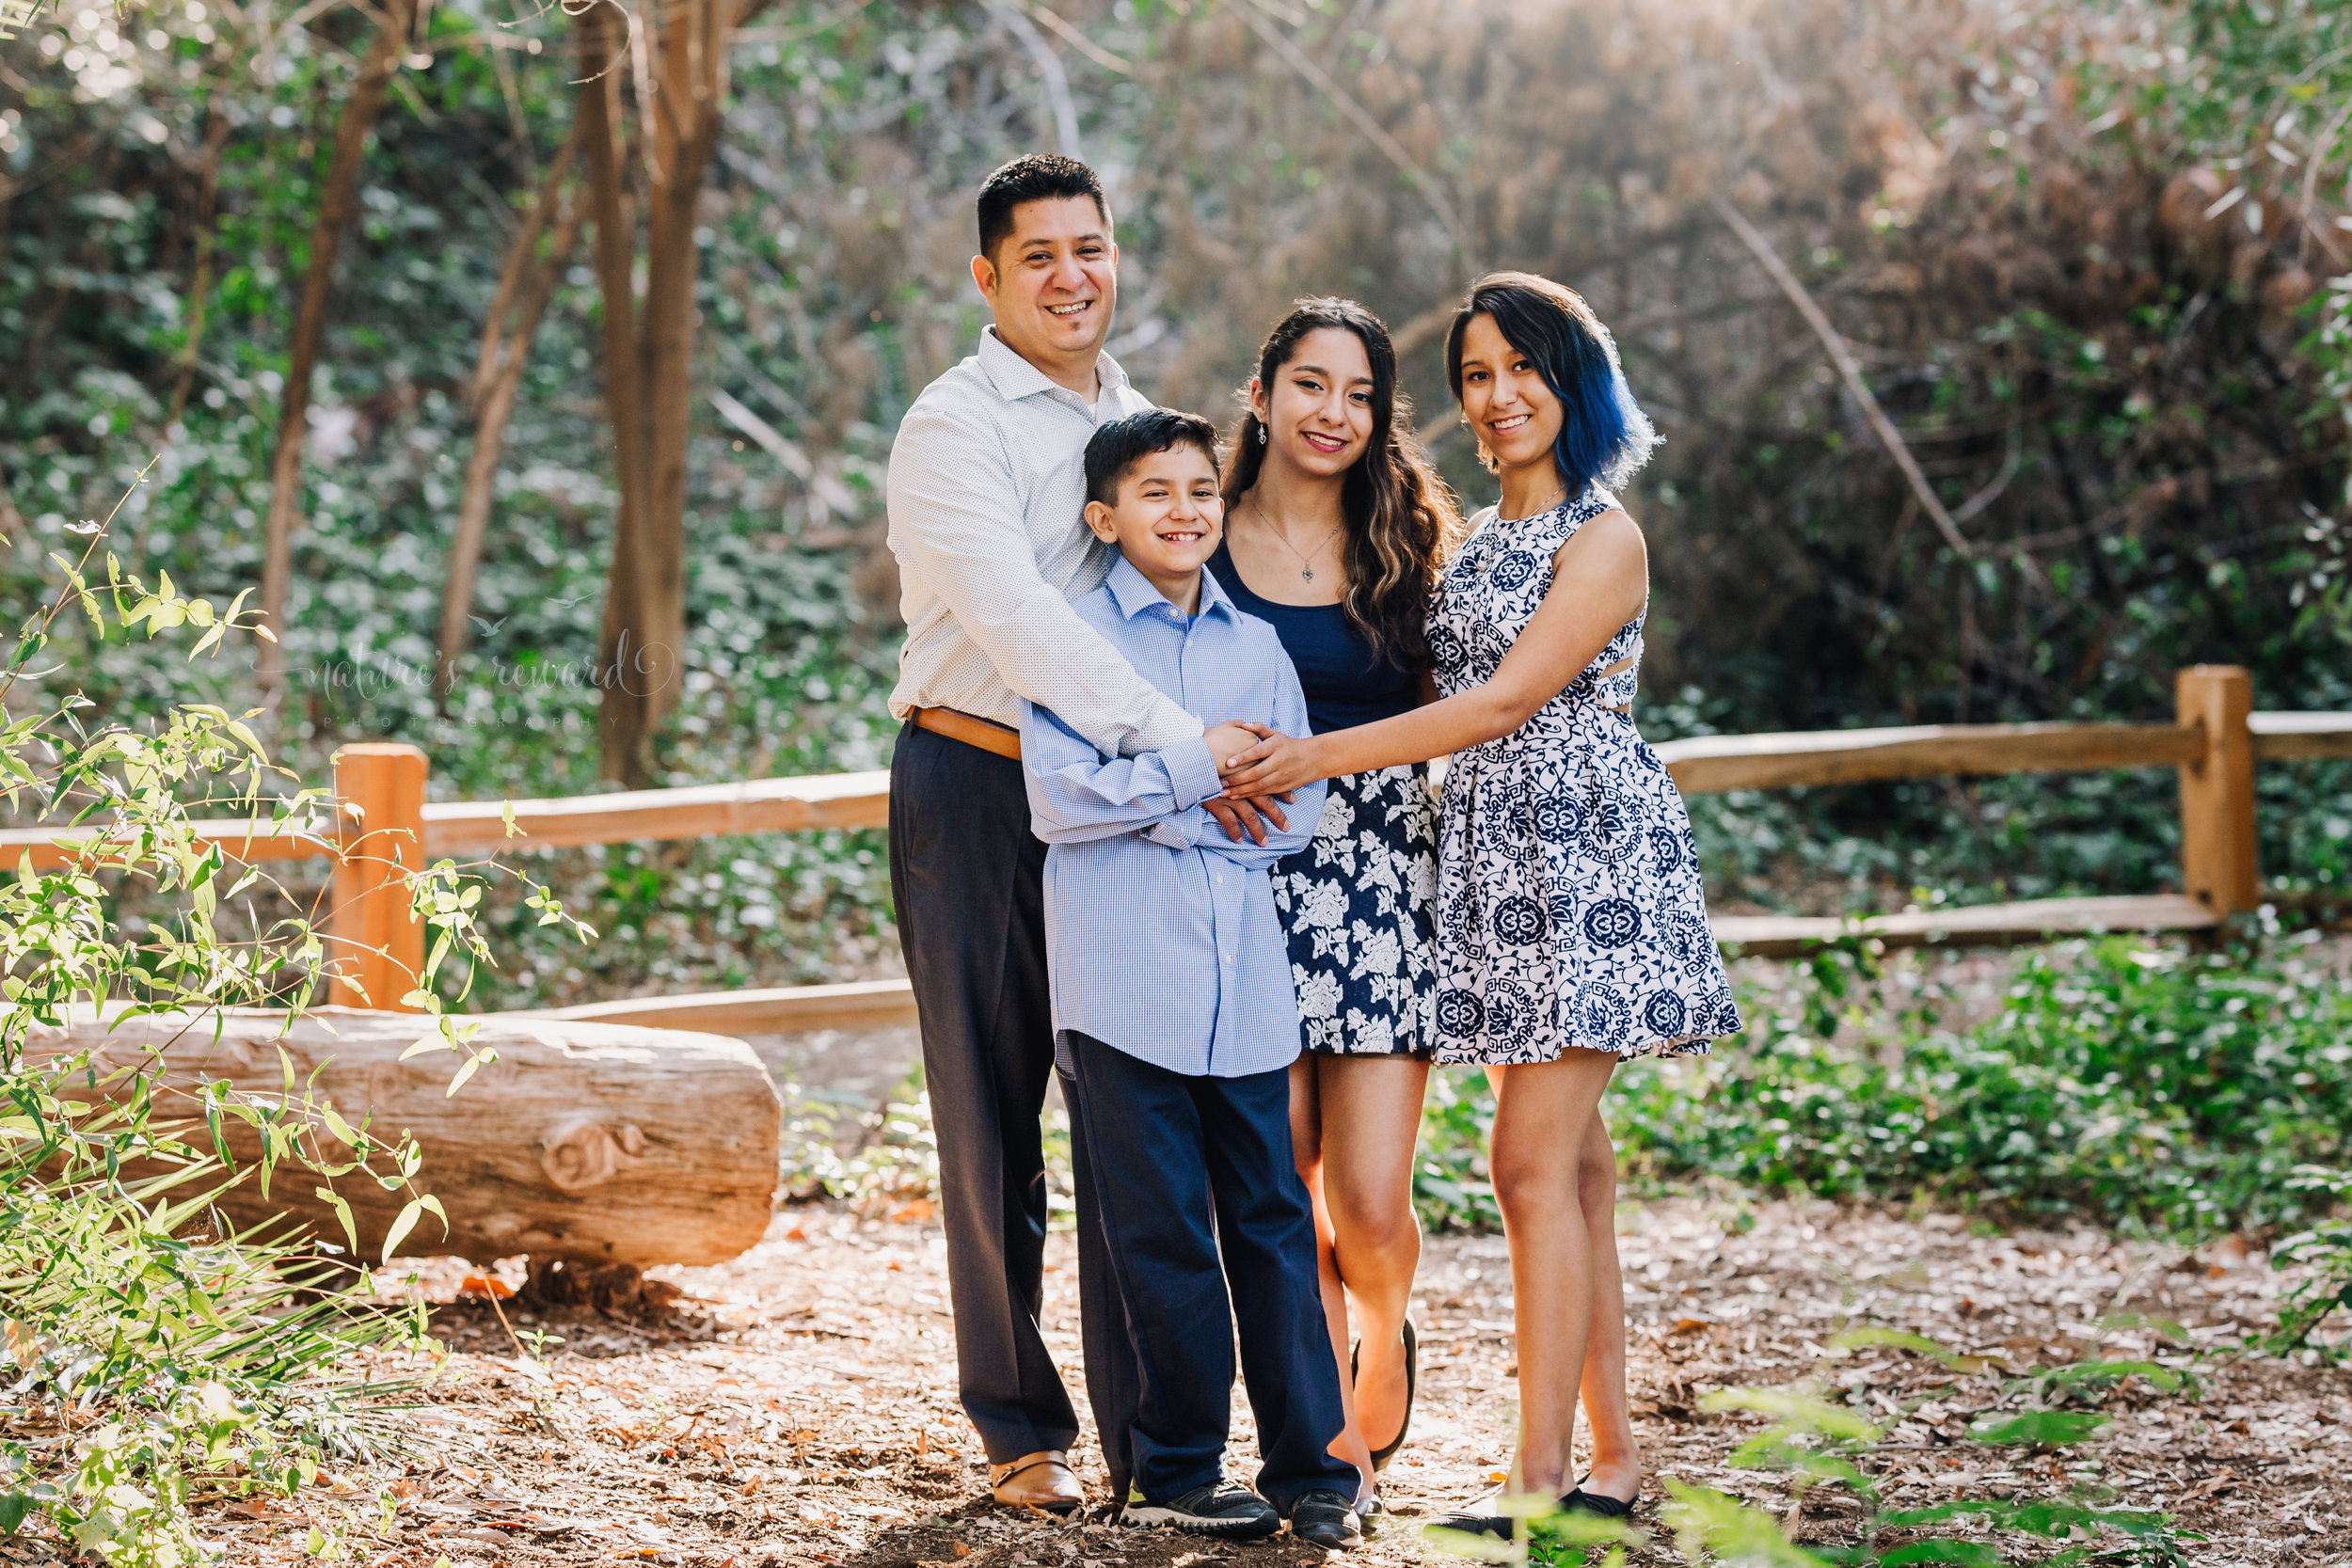 Just dad and us wearing blues and blue florals dresses in this gorgeous family photography portrait by Nature's Reward Photography.